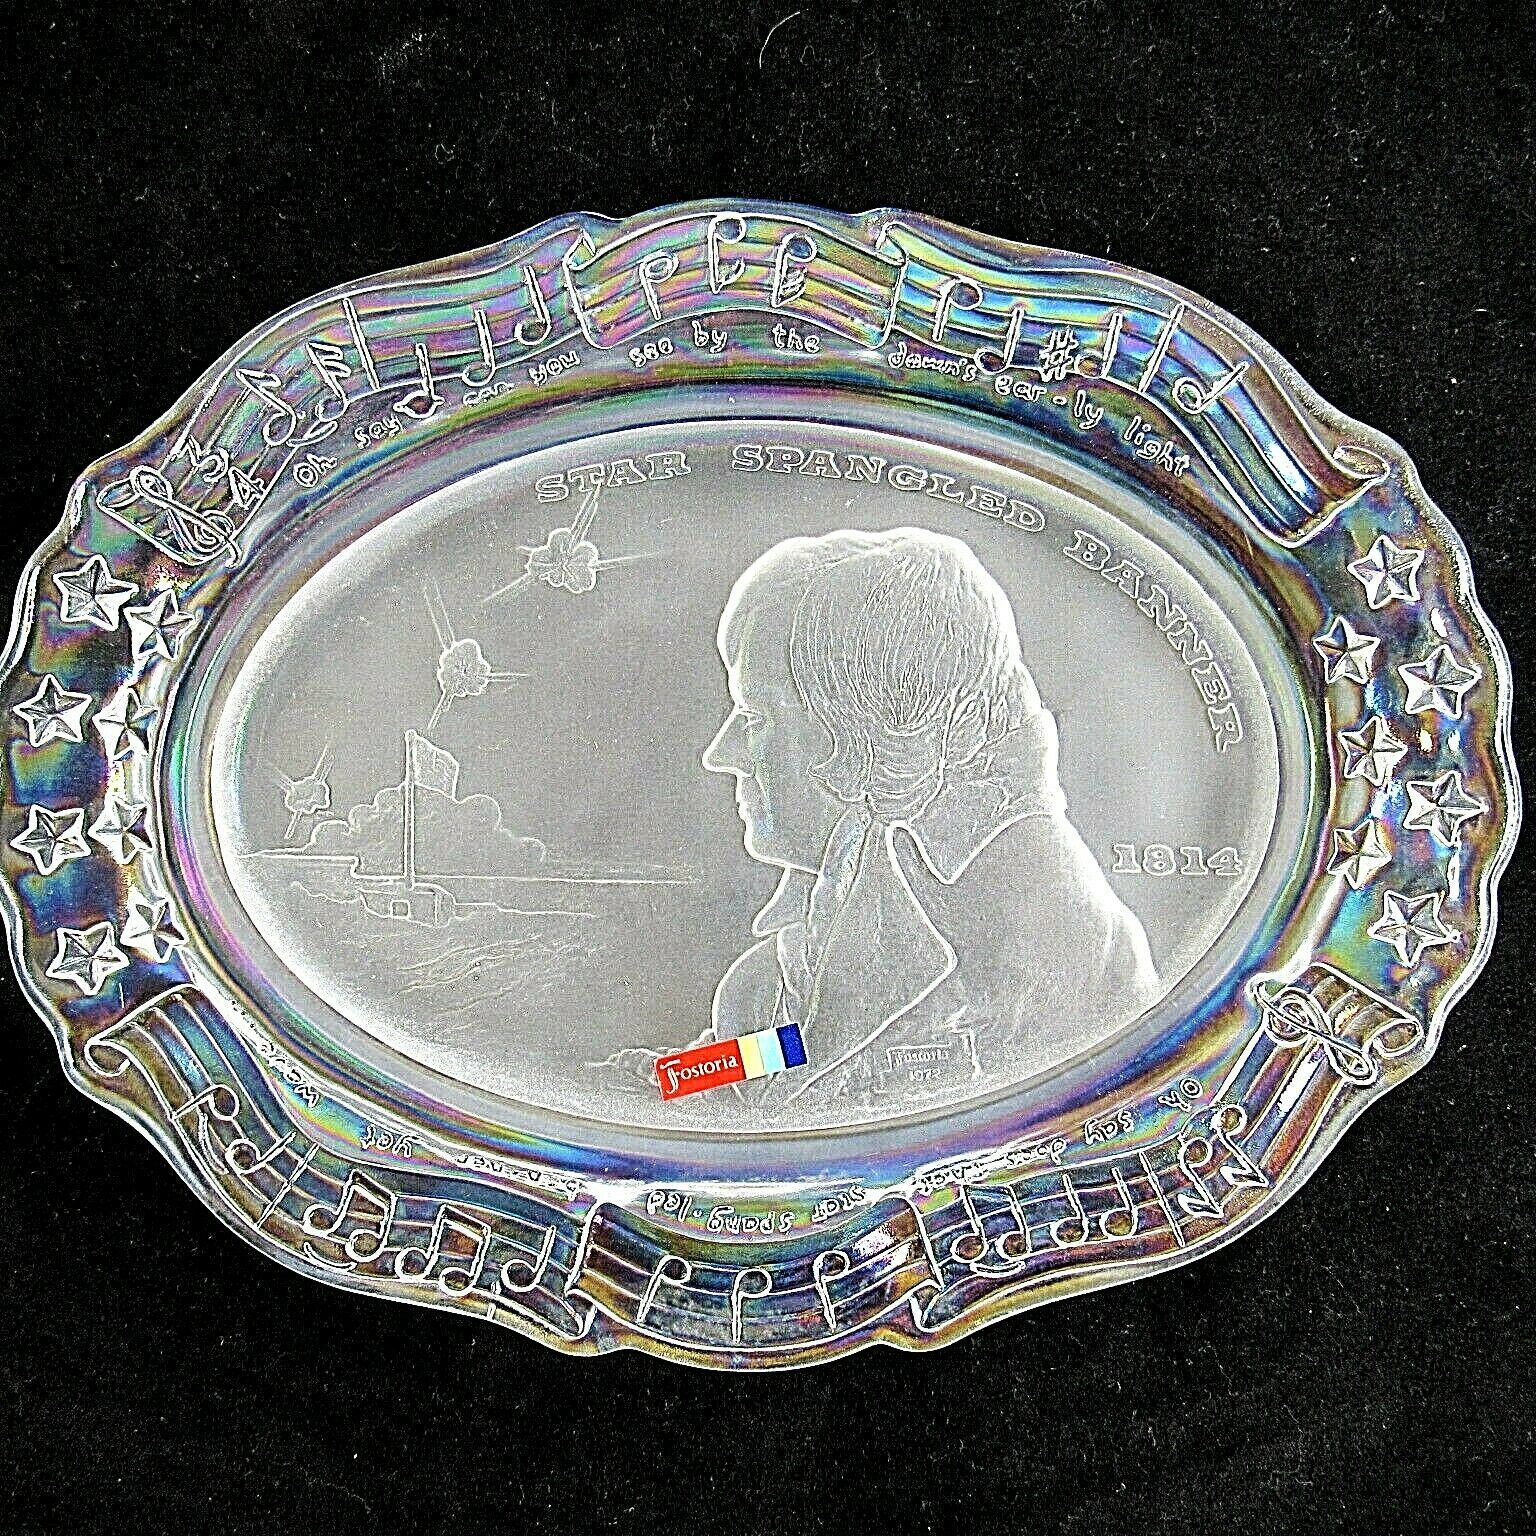 Fostoria Iridescent Francis Scott Key Glass Plate Star Spangled Banner Anthem - $29.69